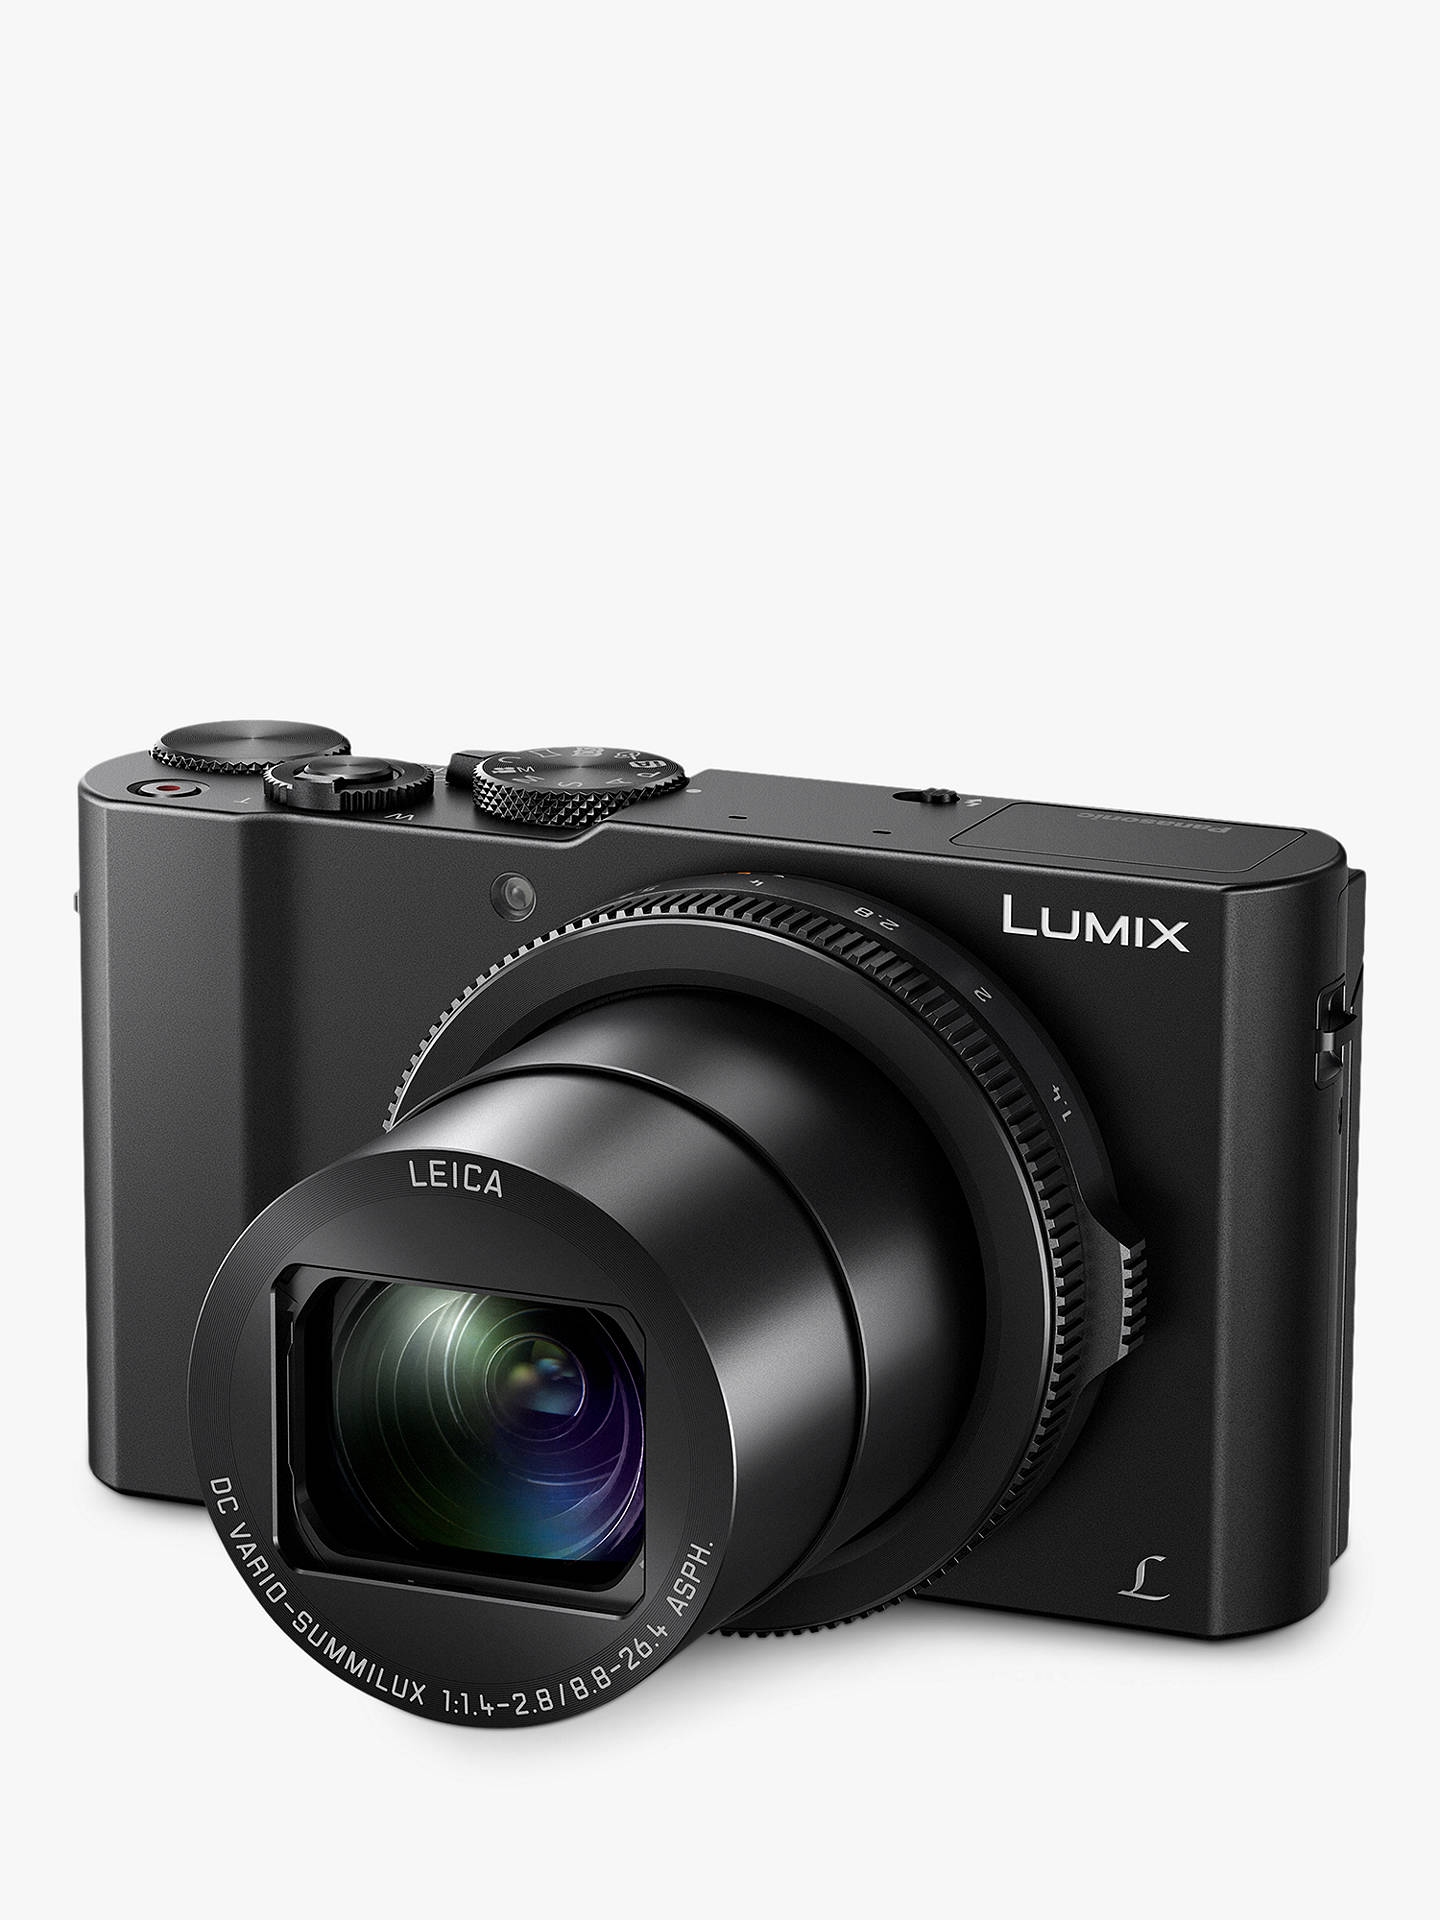 panasonic lumix dmc-lx15 camera, 4k ultra hd, 20.1mp, 3x optical